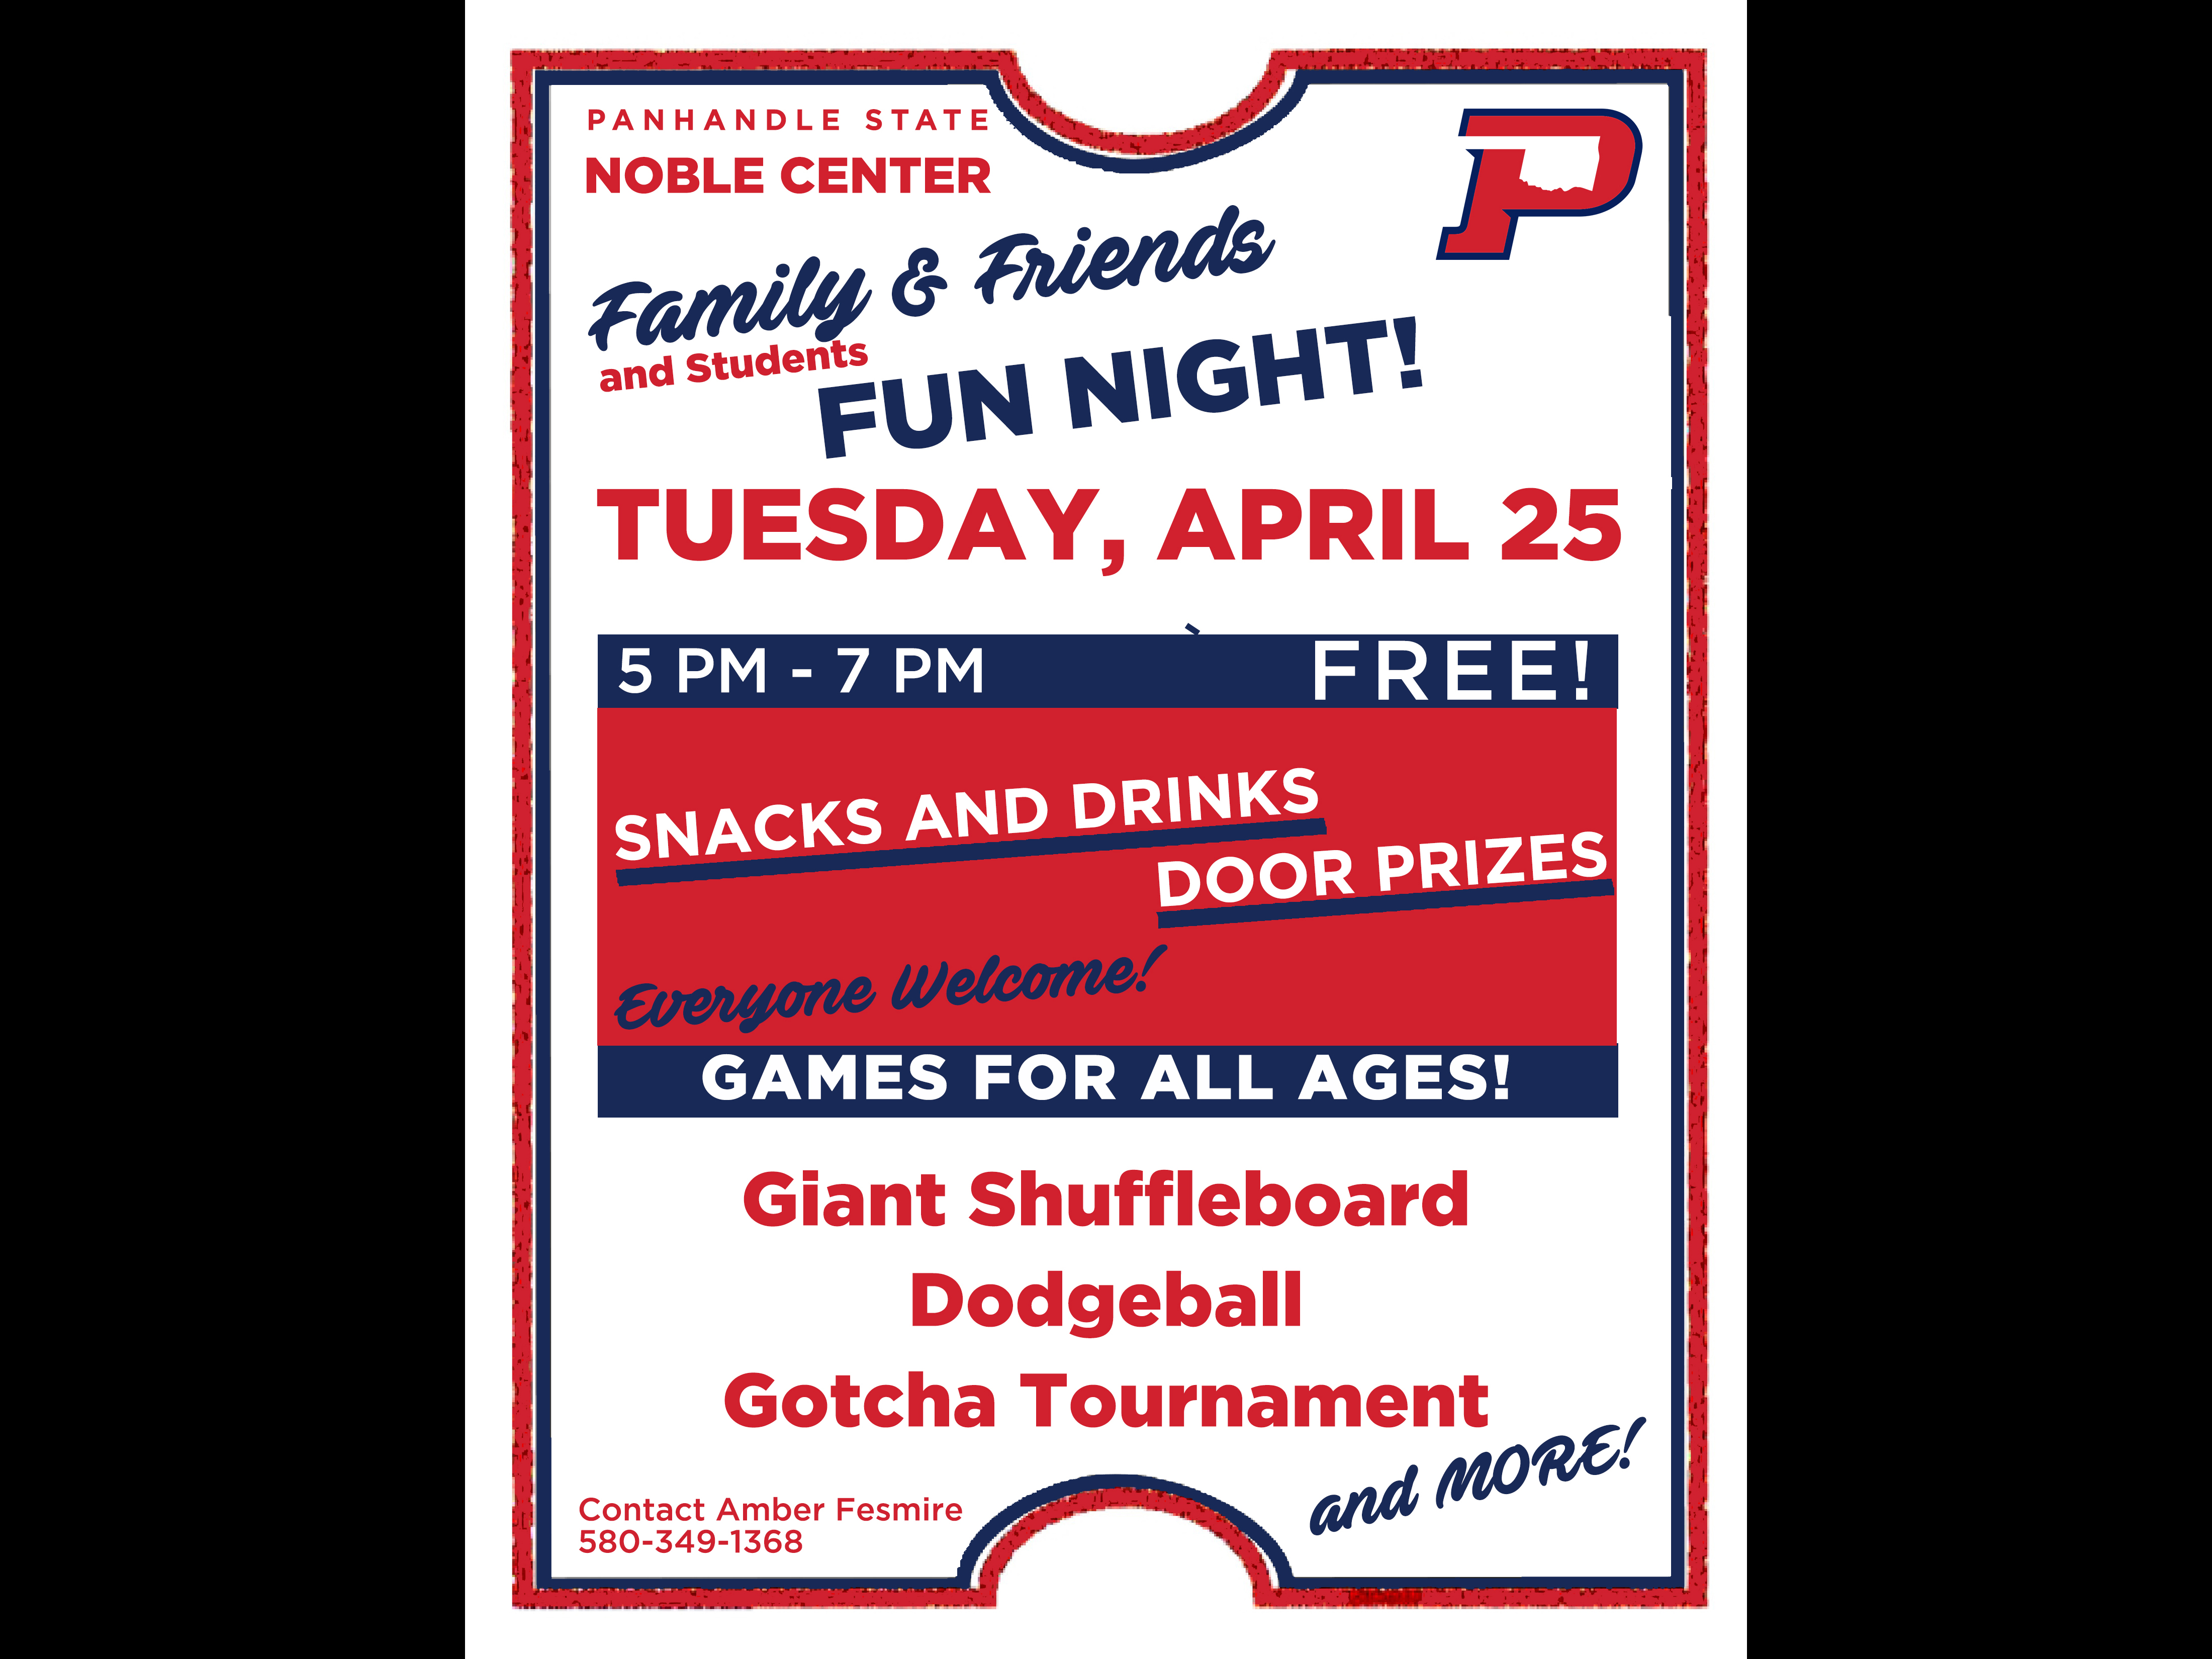 Join us for Family, Friends, and Students night at the Oklahoma Panhandle State University Noble Center on Tuesday, April 25 from 5 p.m. to 7 p.m.